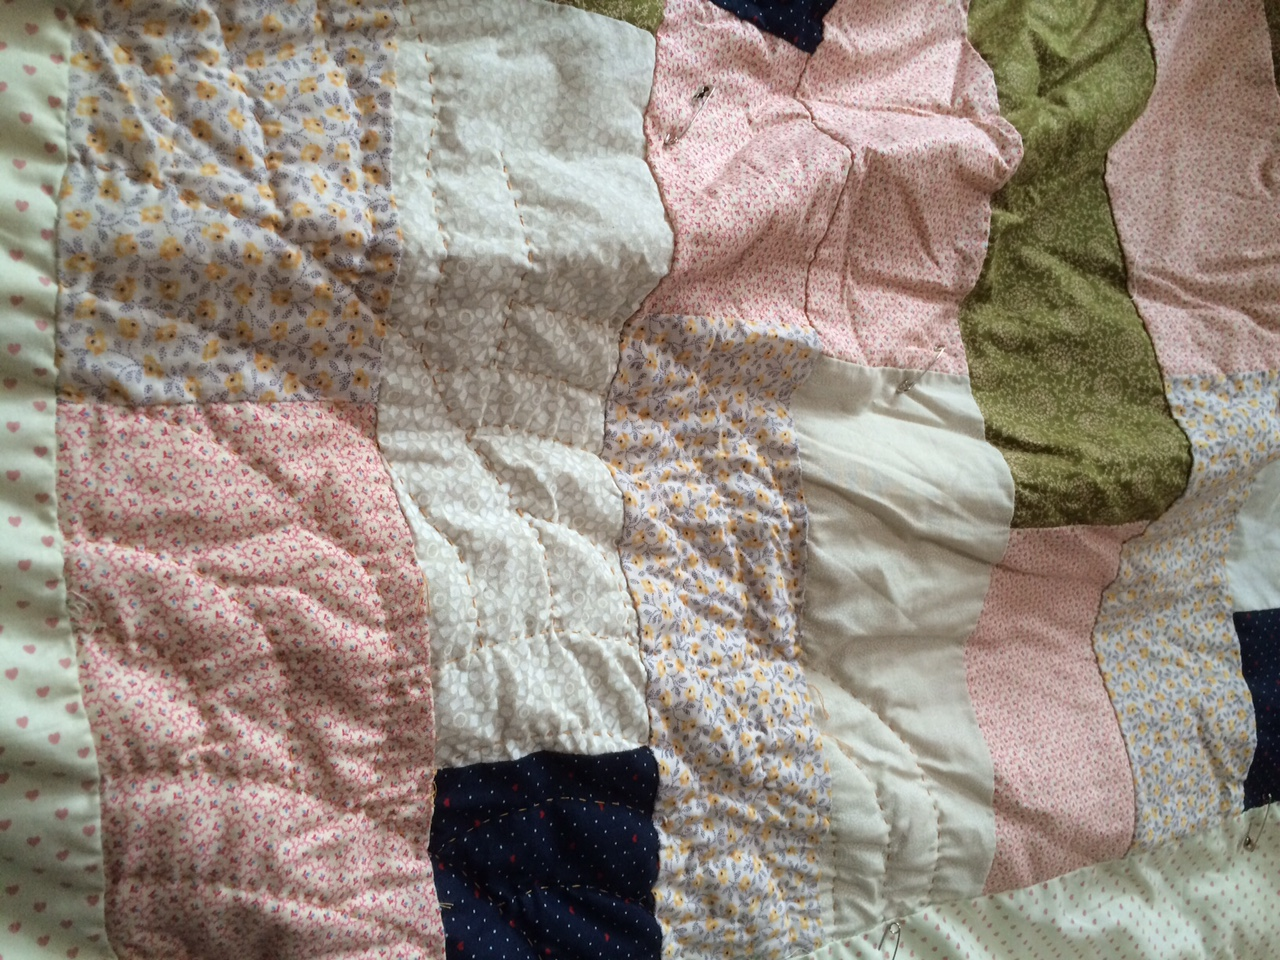 This big quilt gets all wrinkled from quilting in my lap. I don't use a hoop or frame.